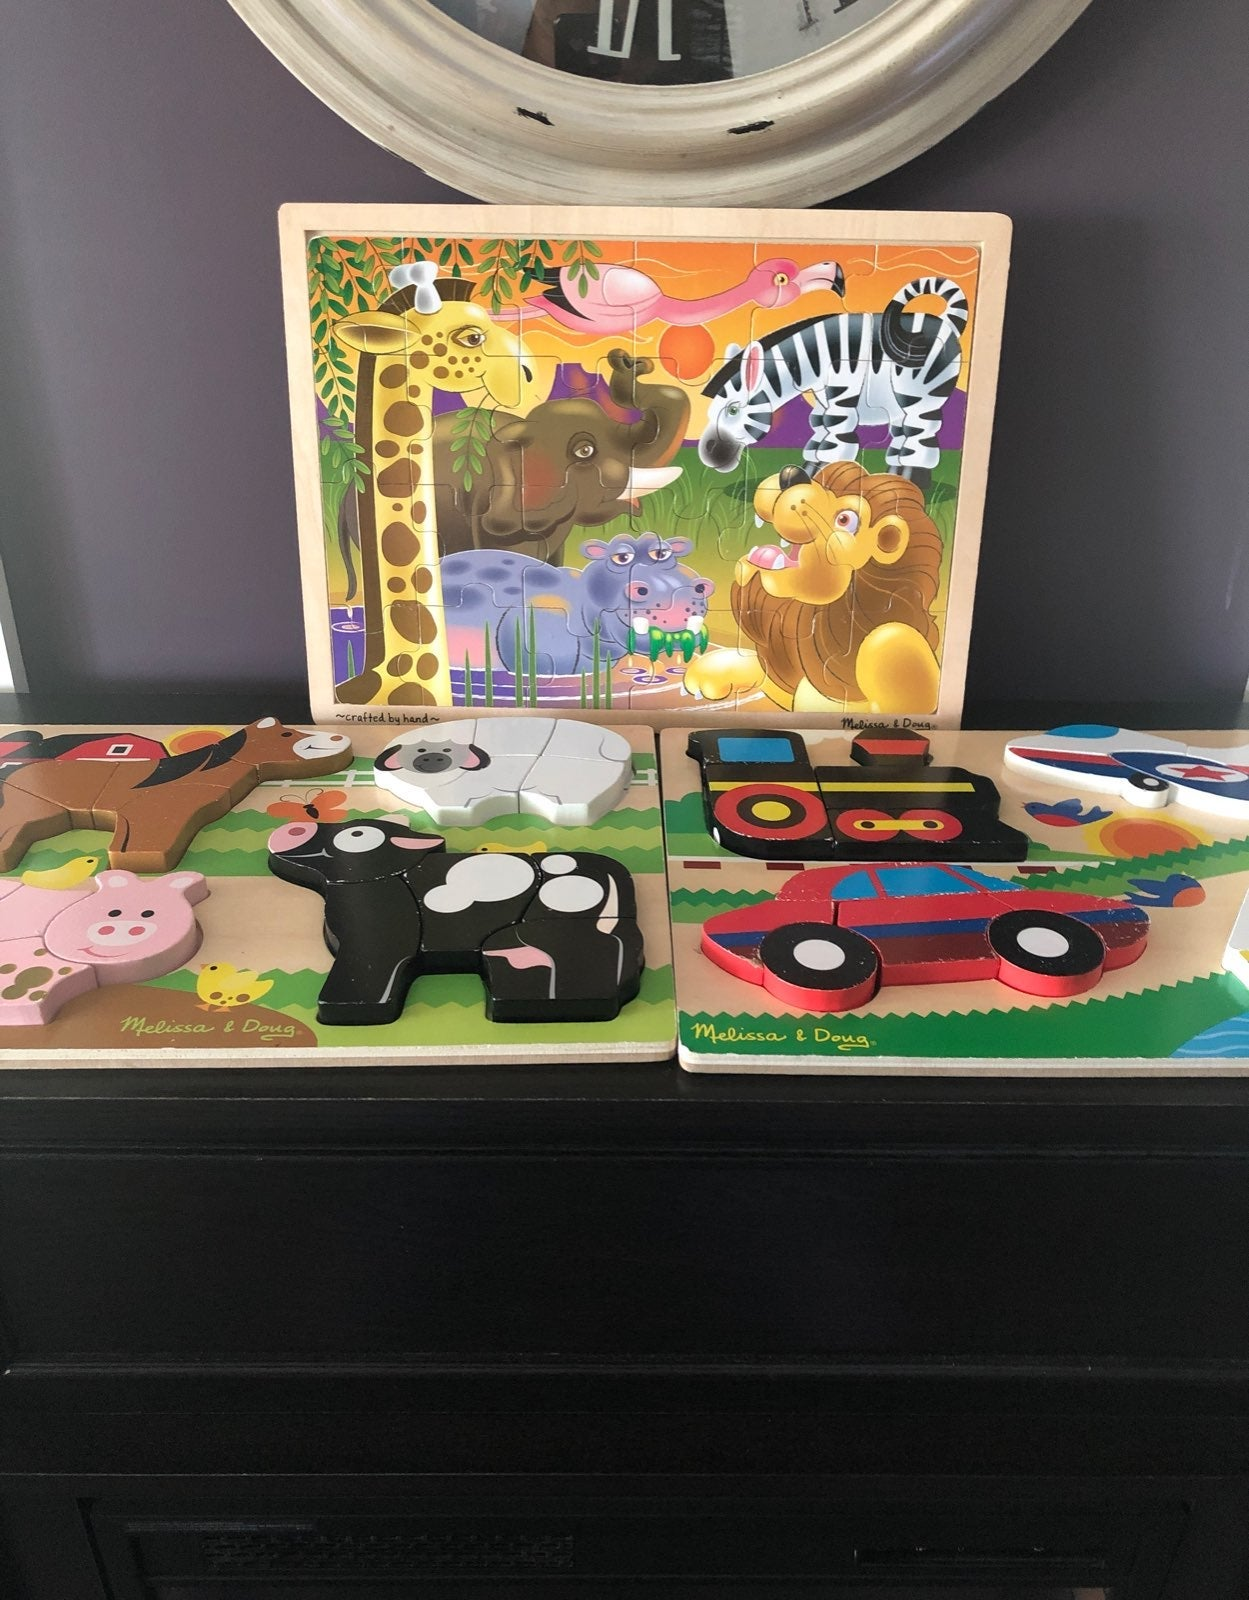 melissa and doug puzzles/fisher price fi